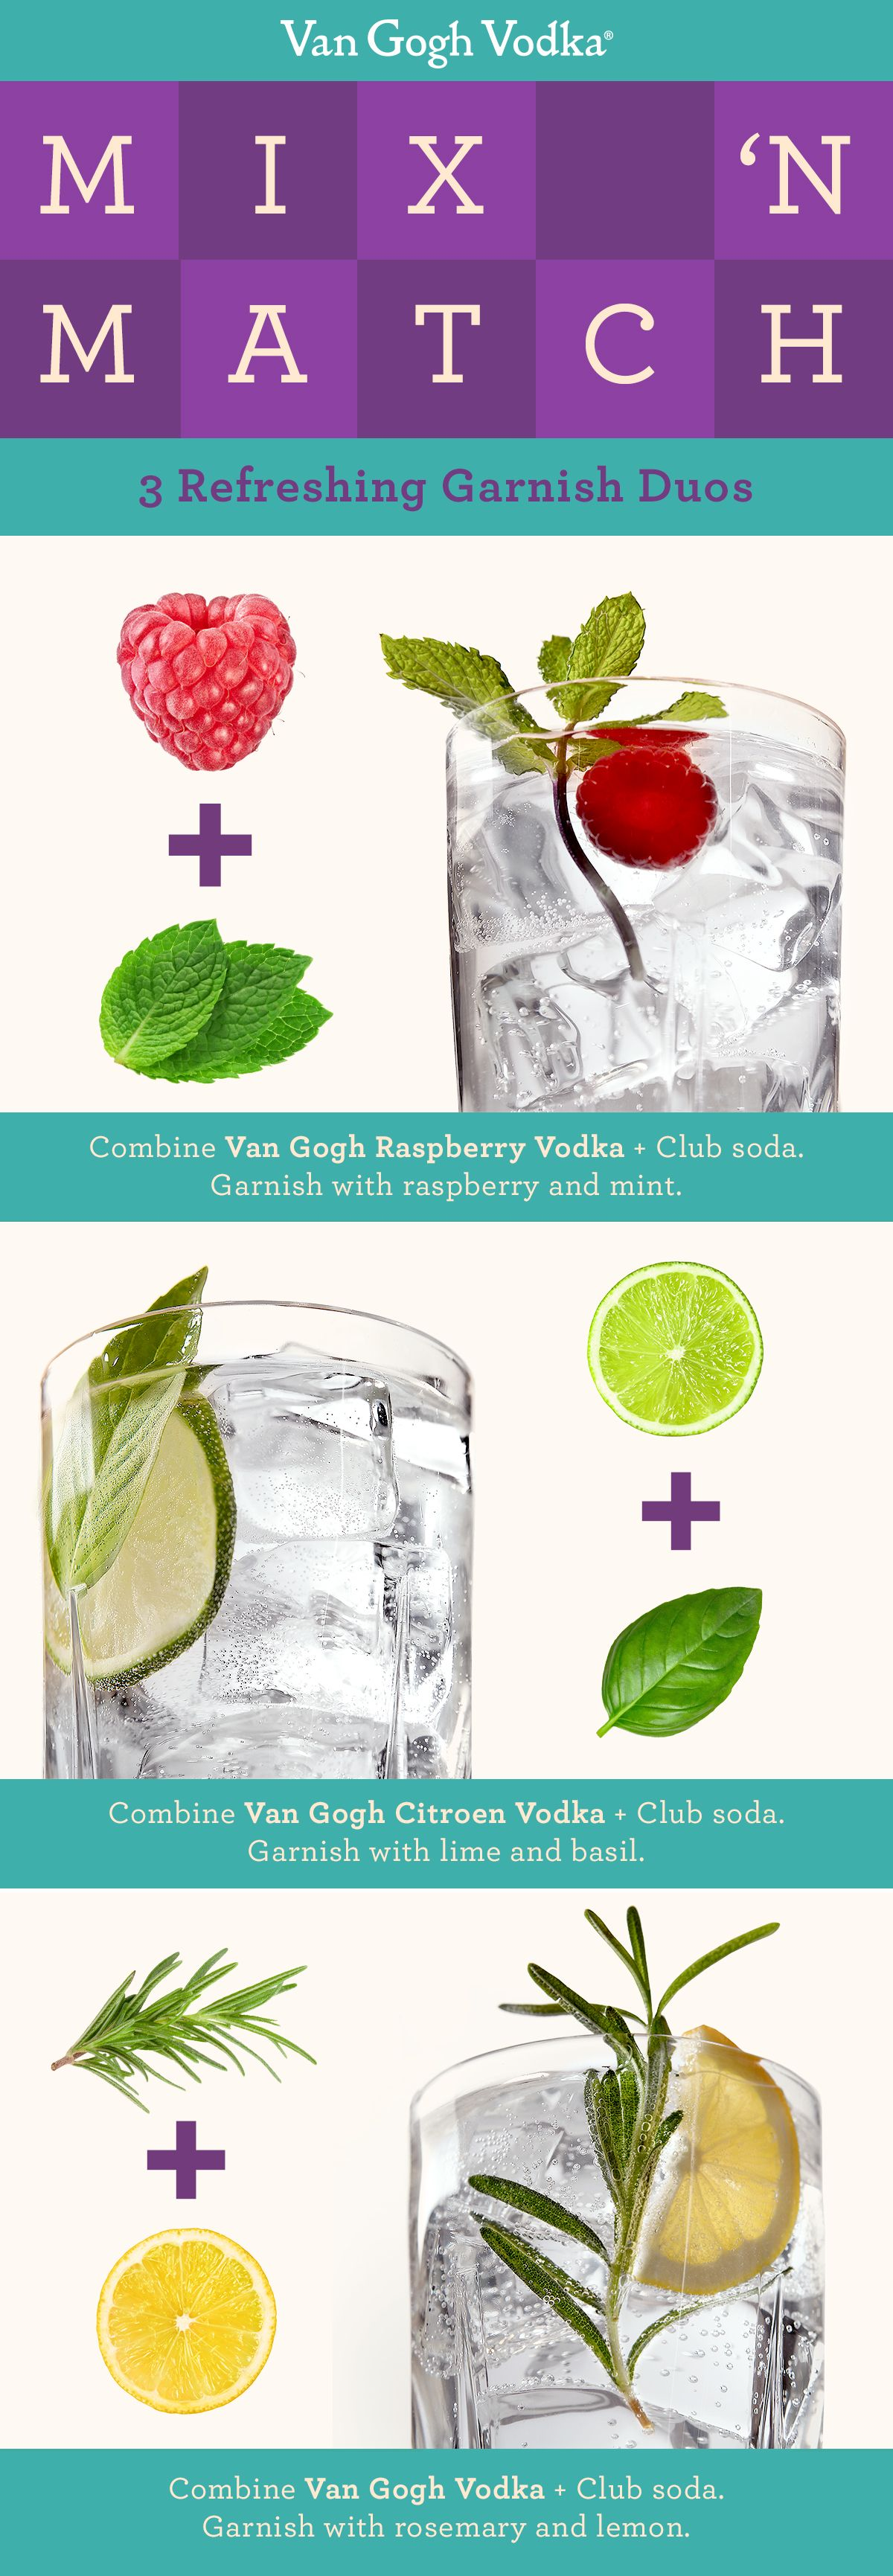 Create countless cocktails by mix and matching your favorite flavors of Van Gogh Vodka with club soda and a simple garnish. Try one of our favorite combos or create your own!